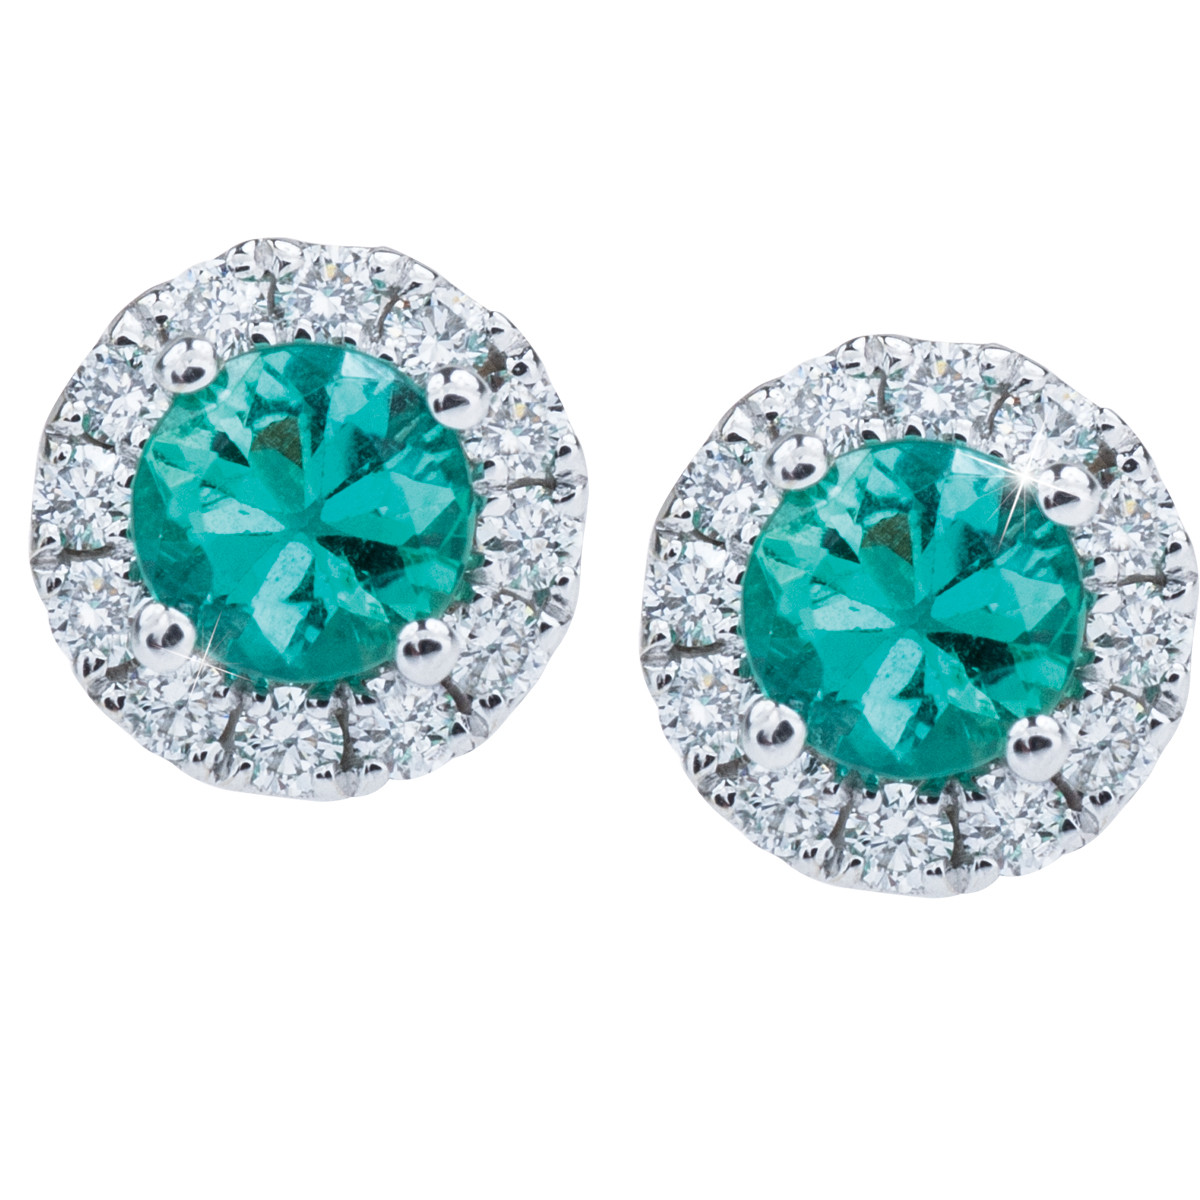 New Emerald & Diamond Earrings